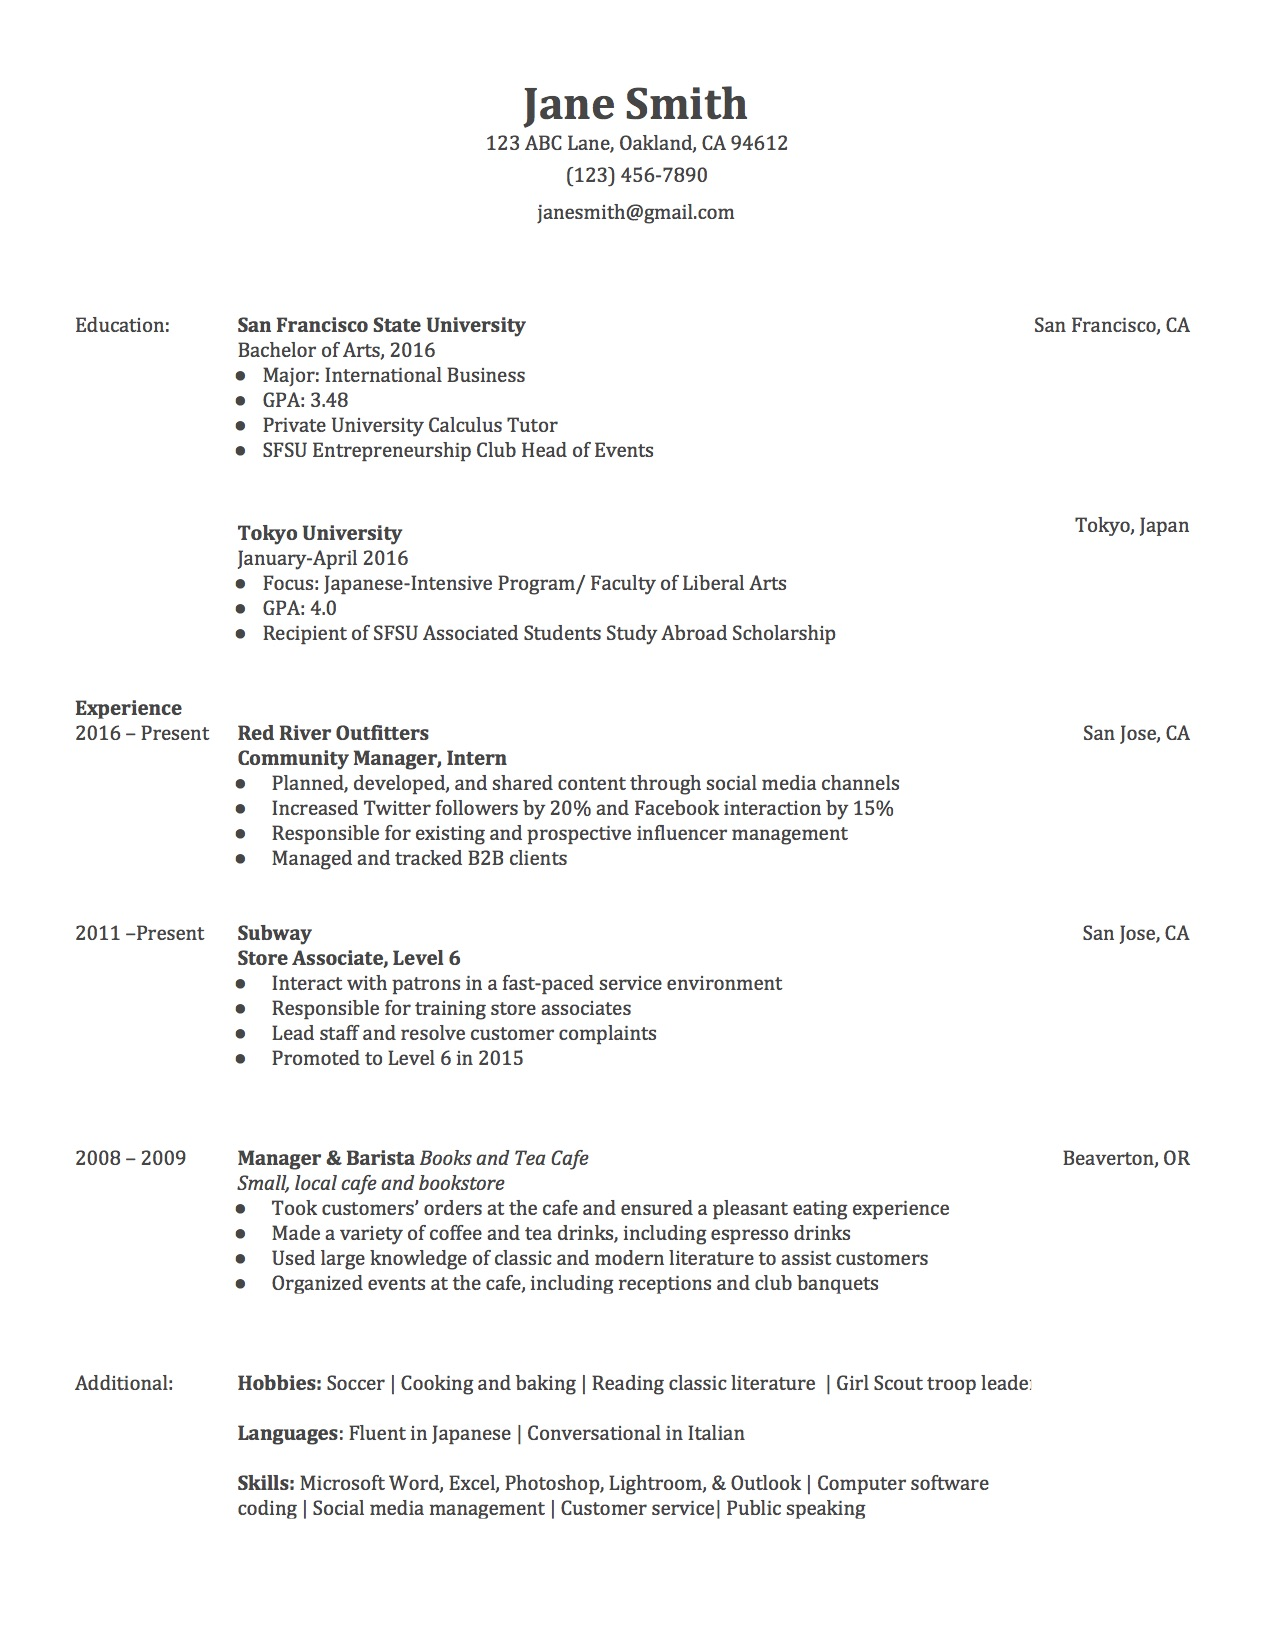 actually resume templates localwise classic resume